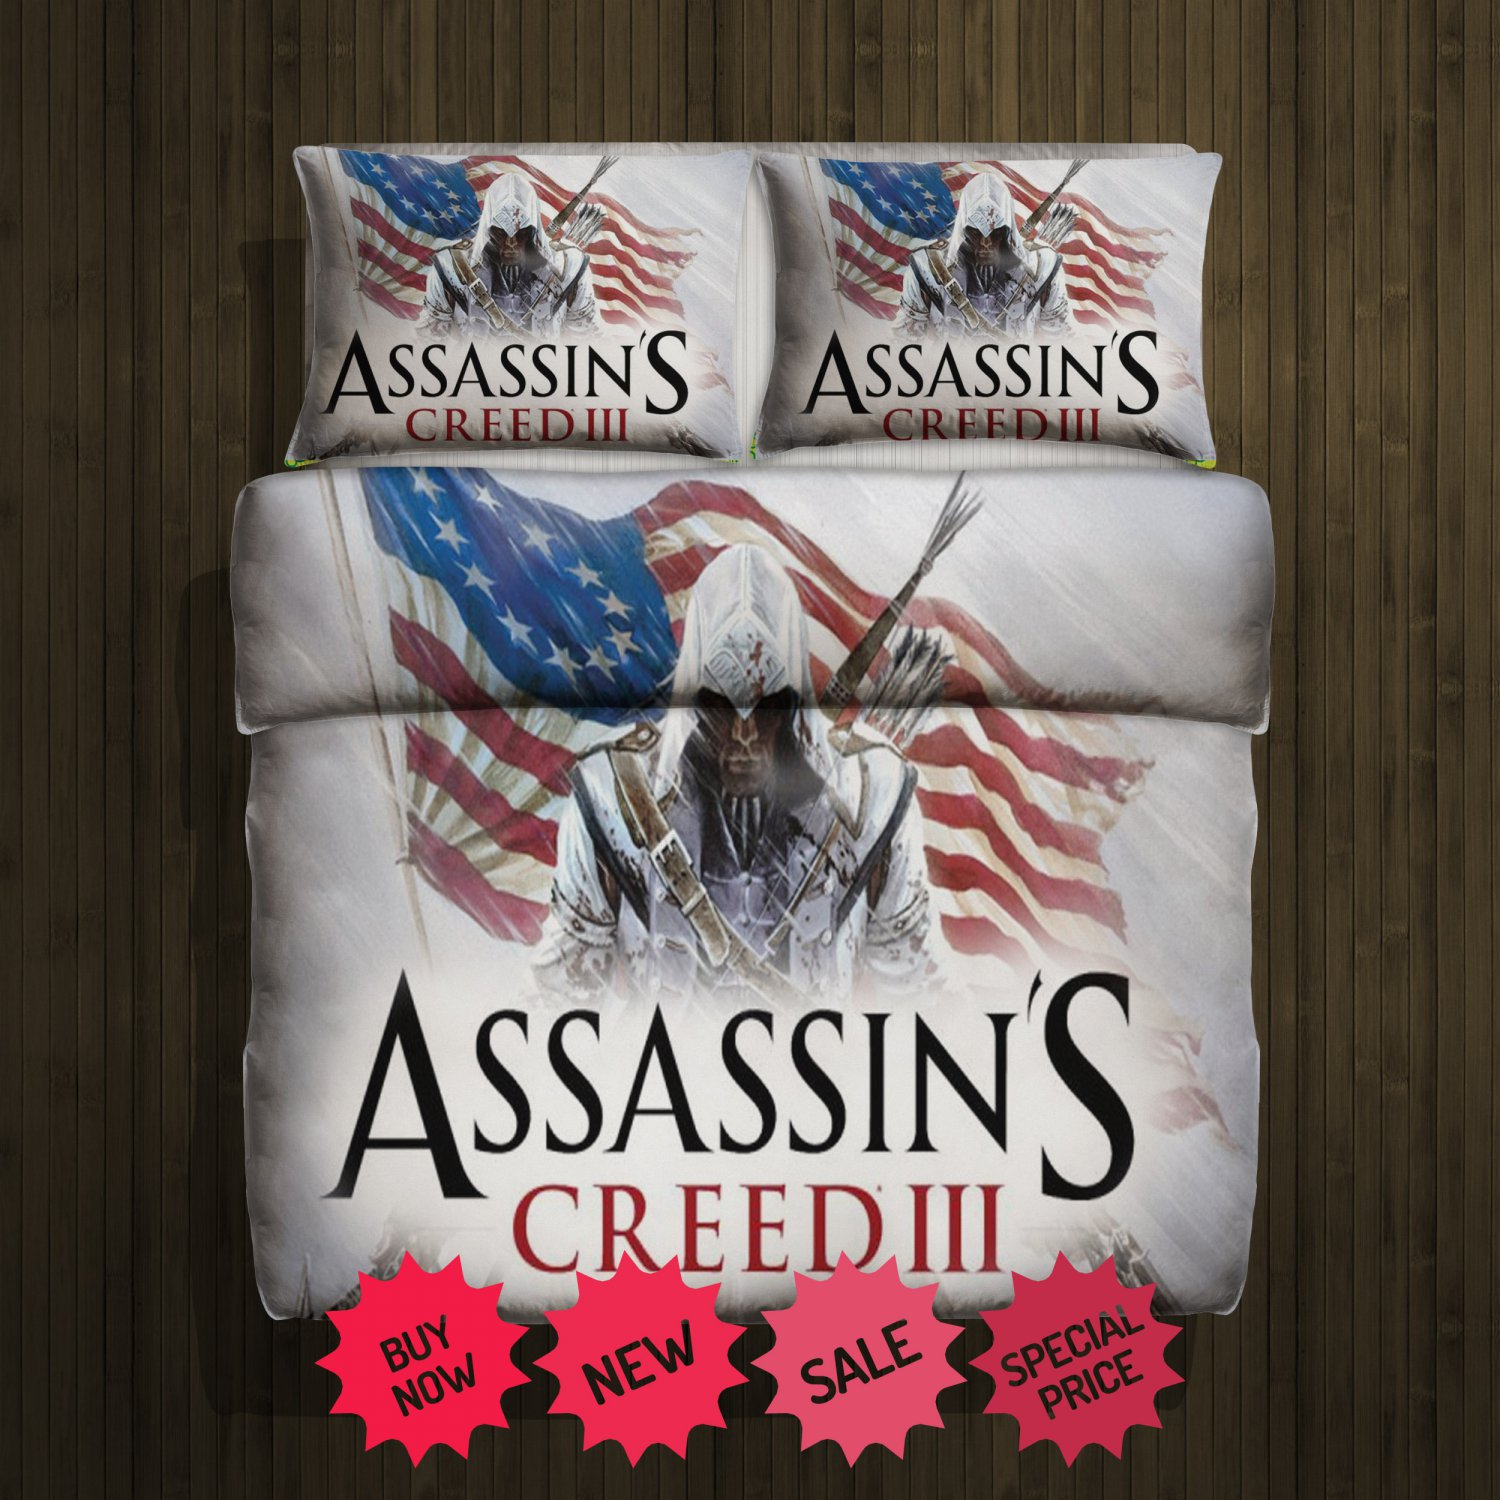 Assassins Creed 3 Blanket Large & 2 Pillow Cases #97363916,97363918(2)